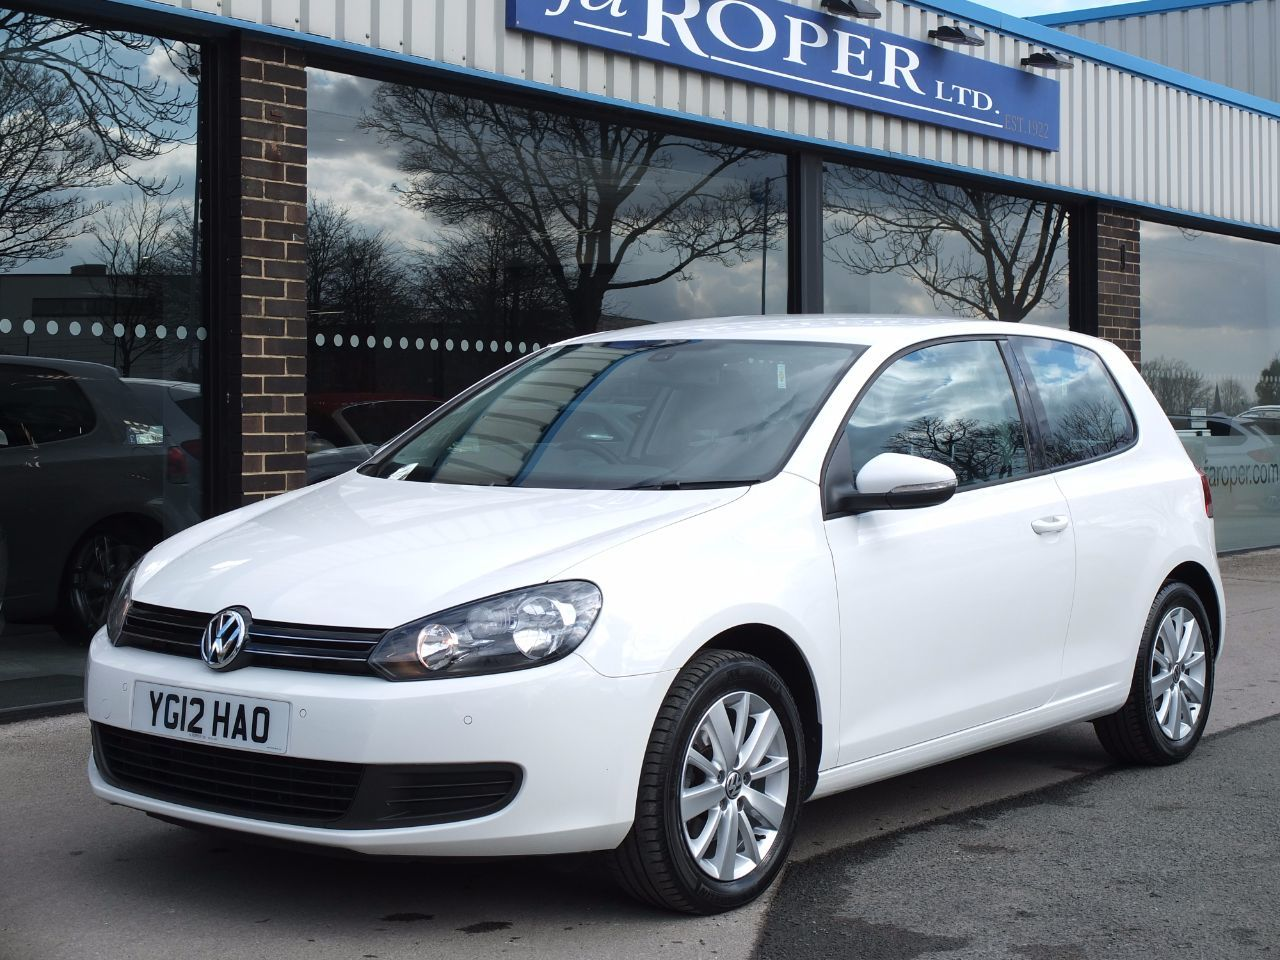 Volkswagen Golf 1.6 TDi 105 BlueMotion Tech Match 3 door Hatchback Diesel Candy WhiteVolkswagen Golf 1.6 TDi 105 BlueMotion Tech Match 3 door Hatchback Diesel Candy White at fa Roper Ltd Bradford